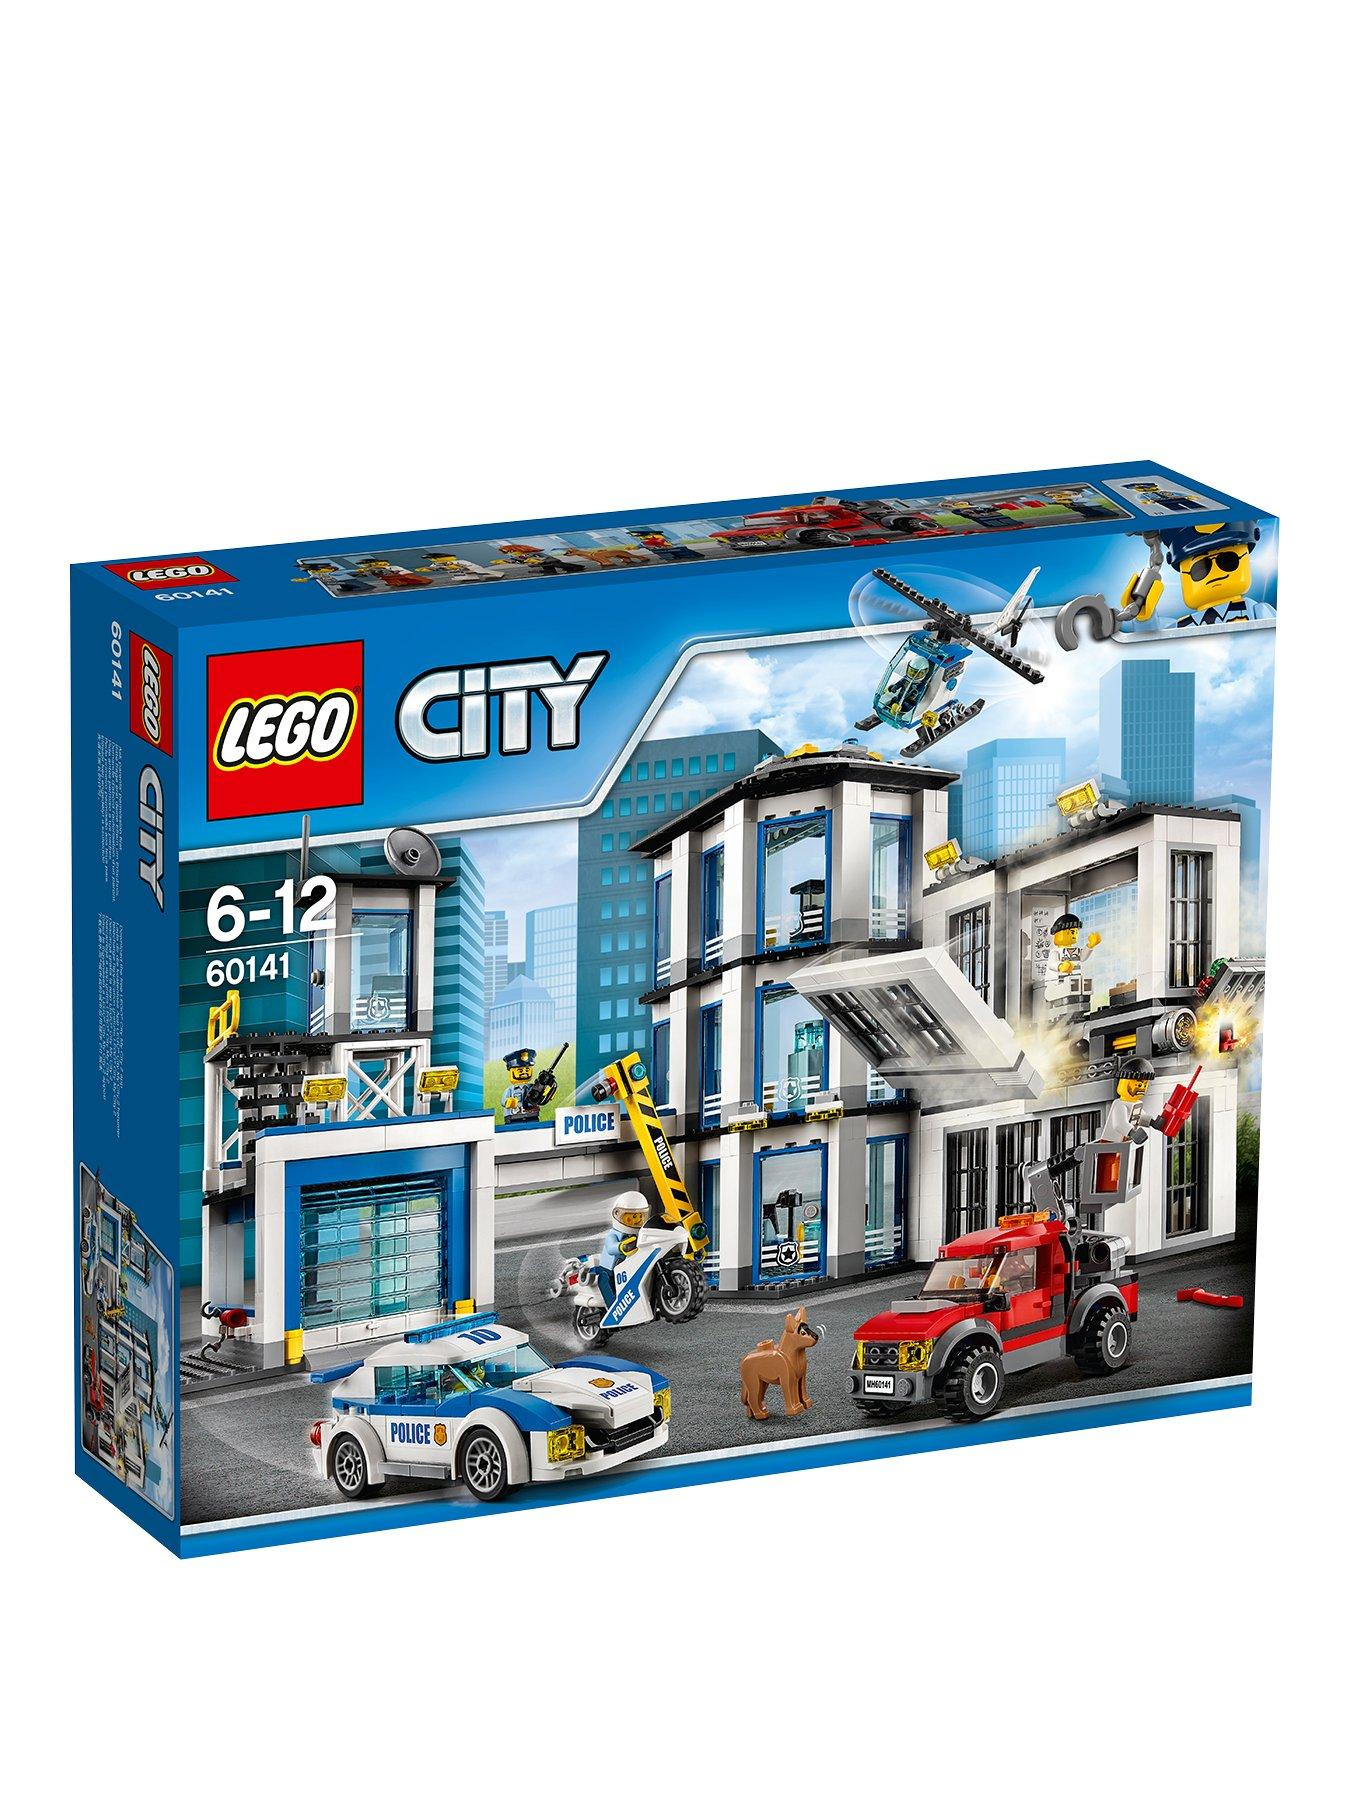 REPLACEMENT Instruction Booklets Manuals ONLY 60047 LEGO City Police Station